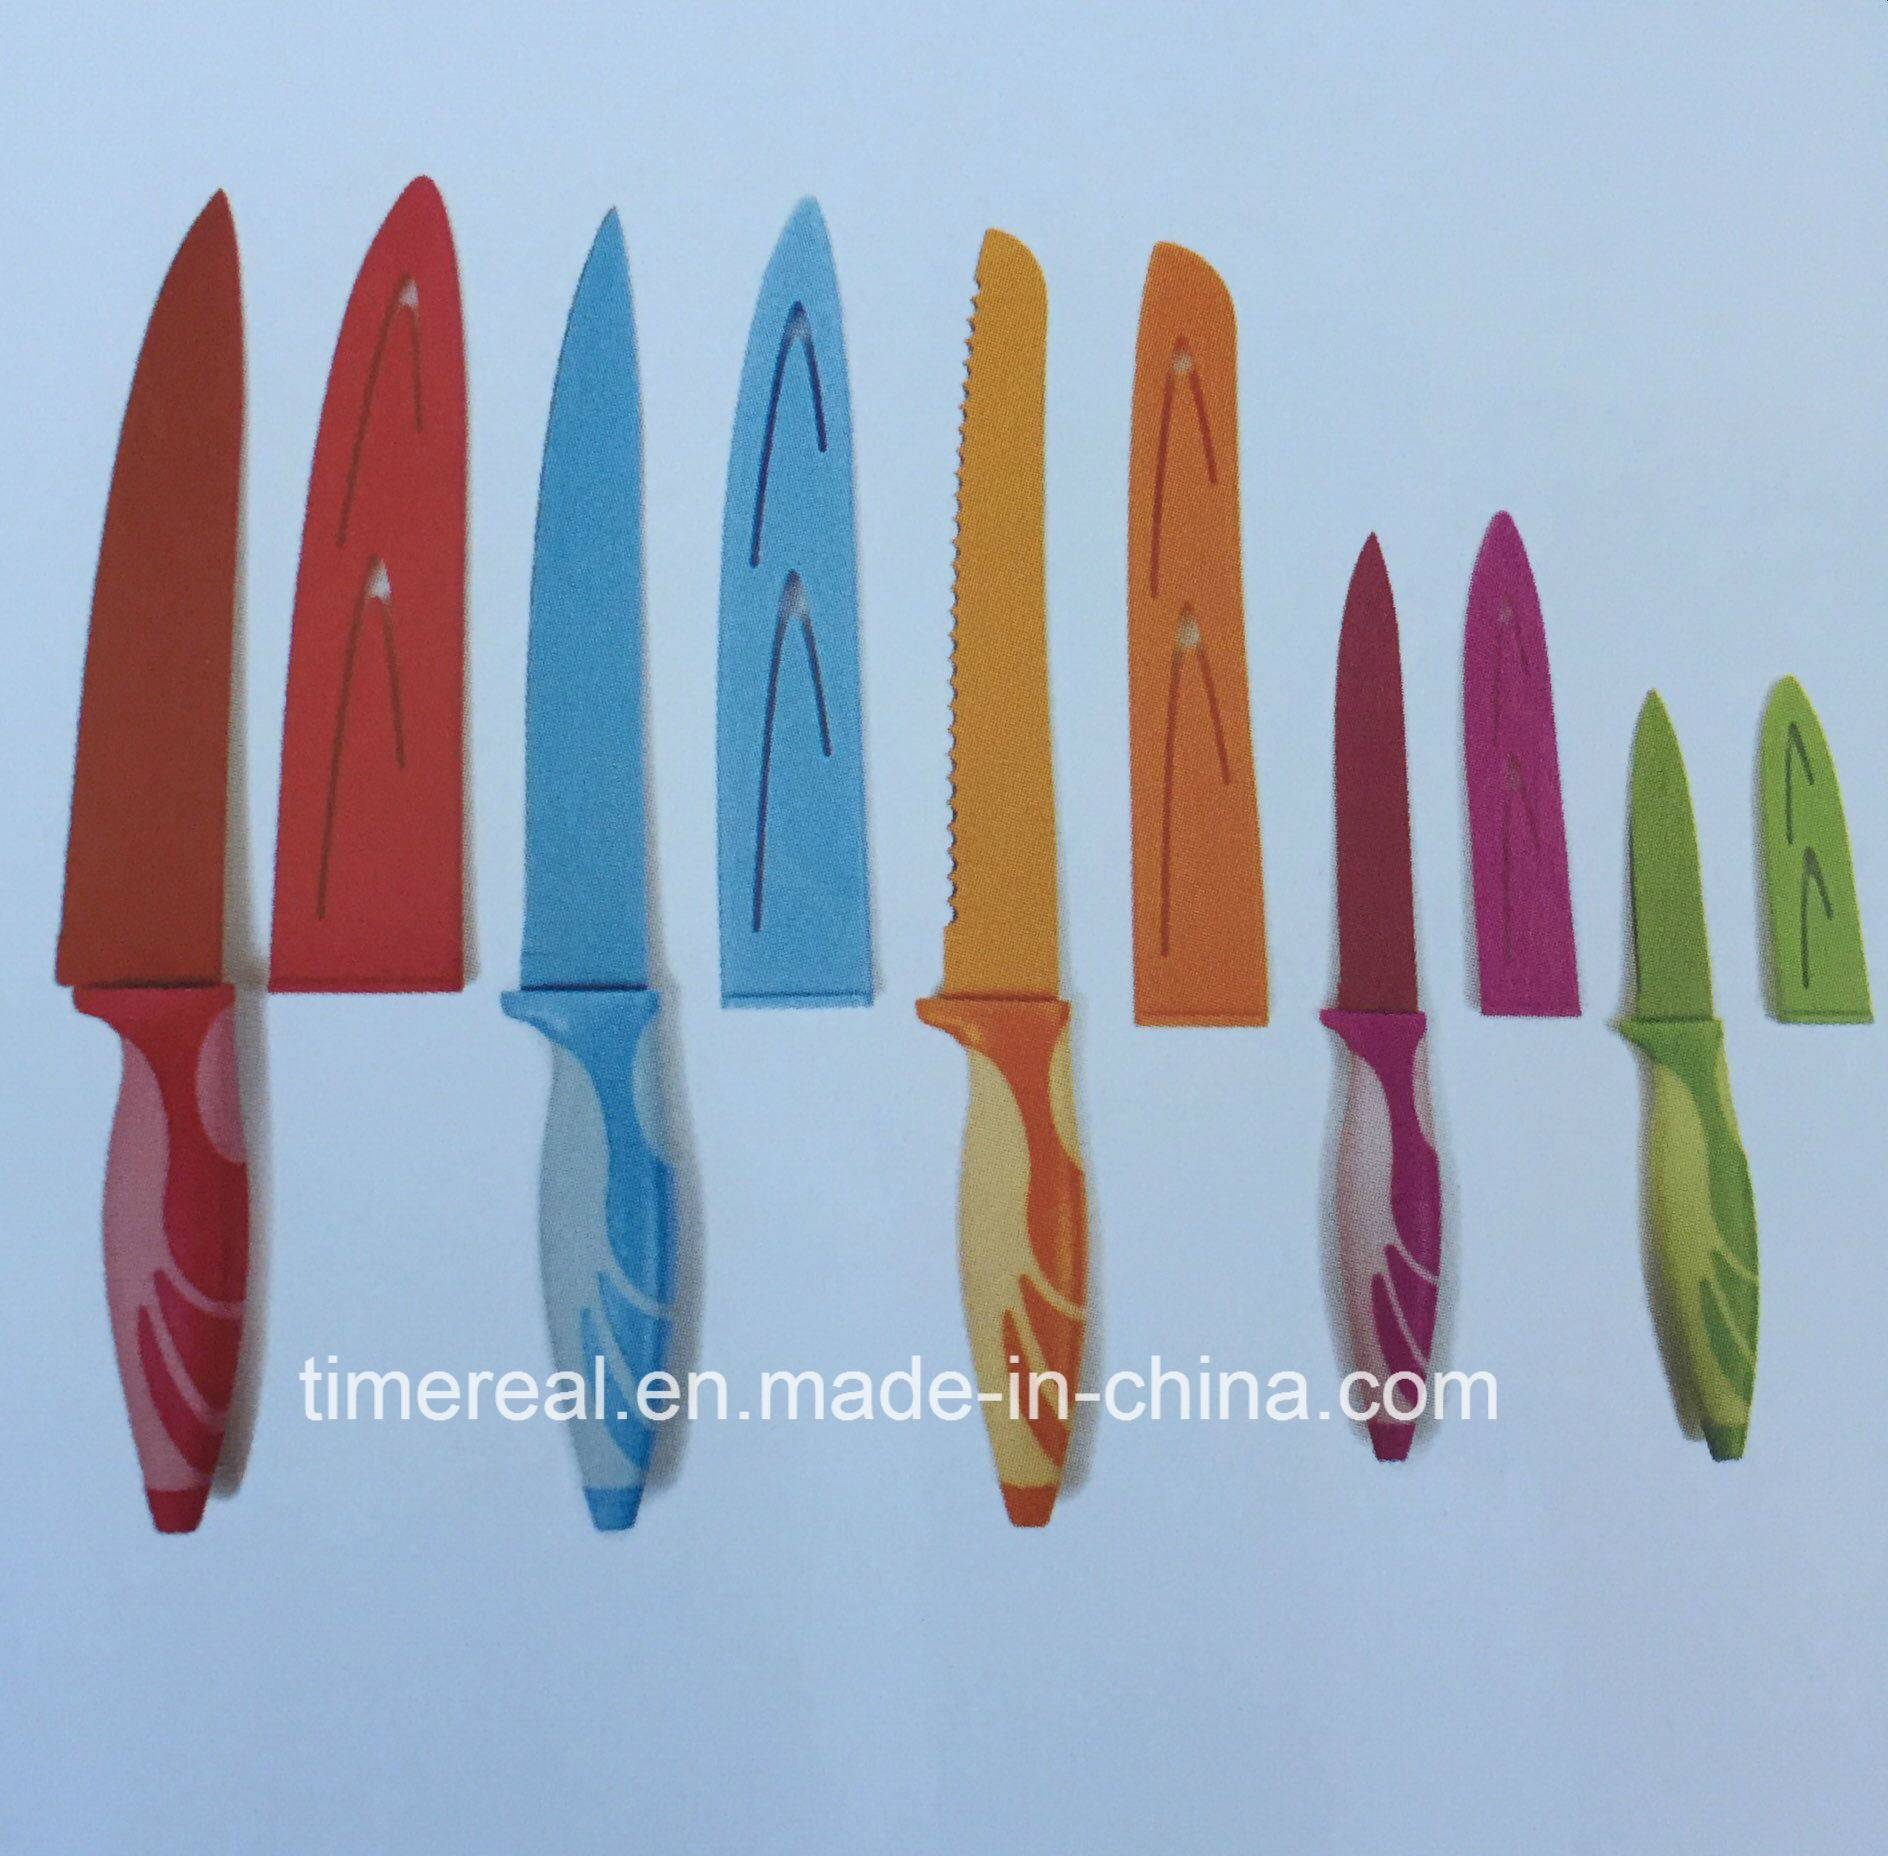 Kitchen Knife/Knife/Chef Knife No. Fj-0022